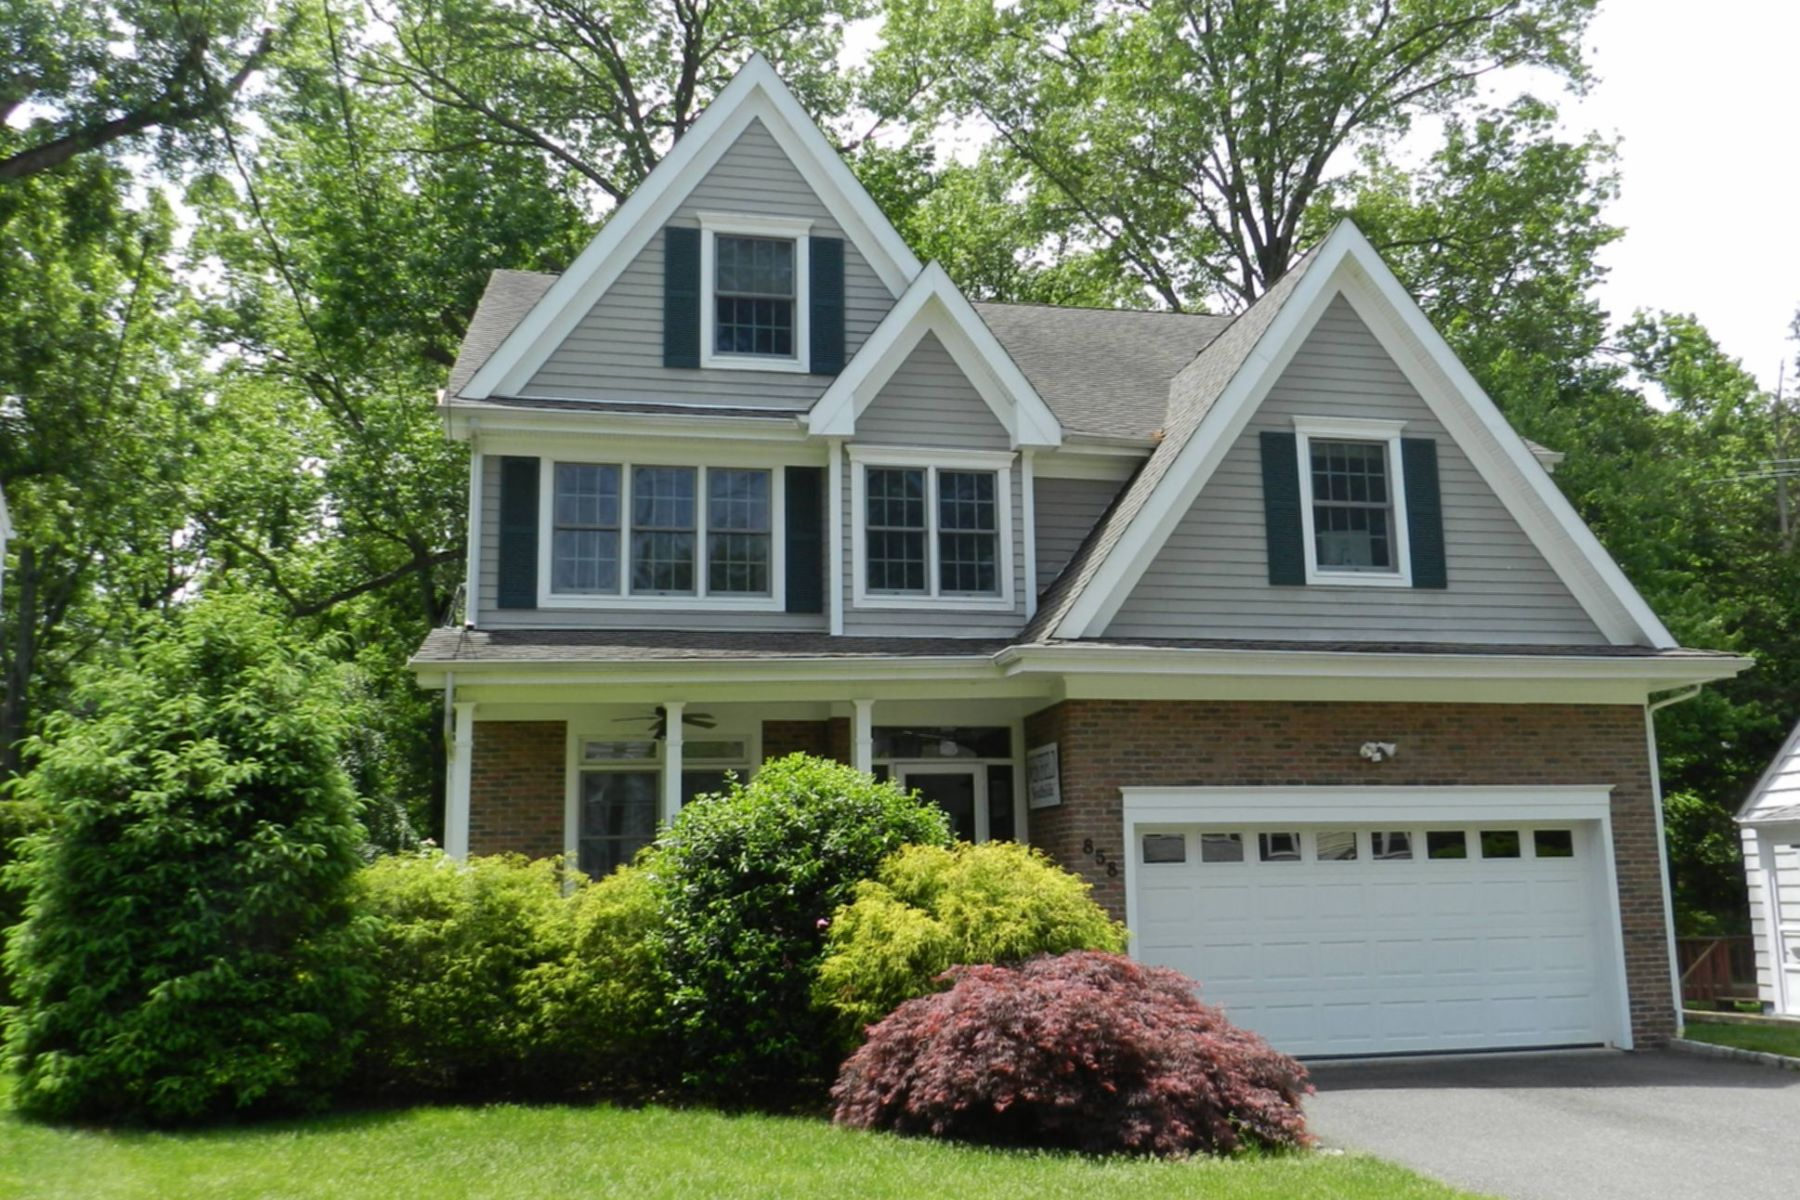 Single Family Home for Sale at Young Innovative Colonial 858 Summit Ave Westfield, New Jersey, 07090 United States